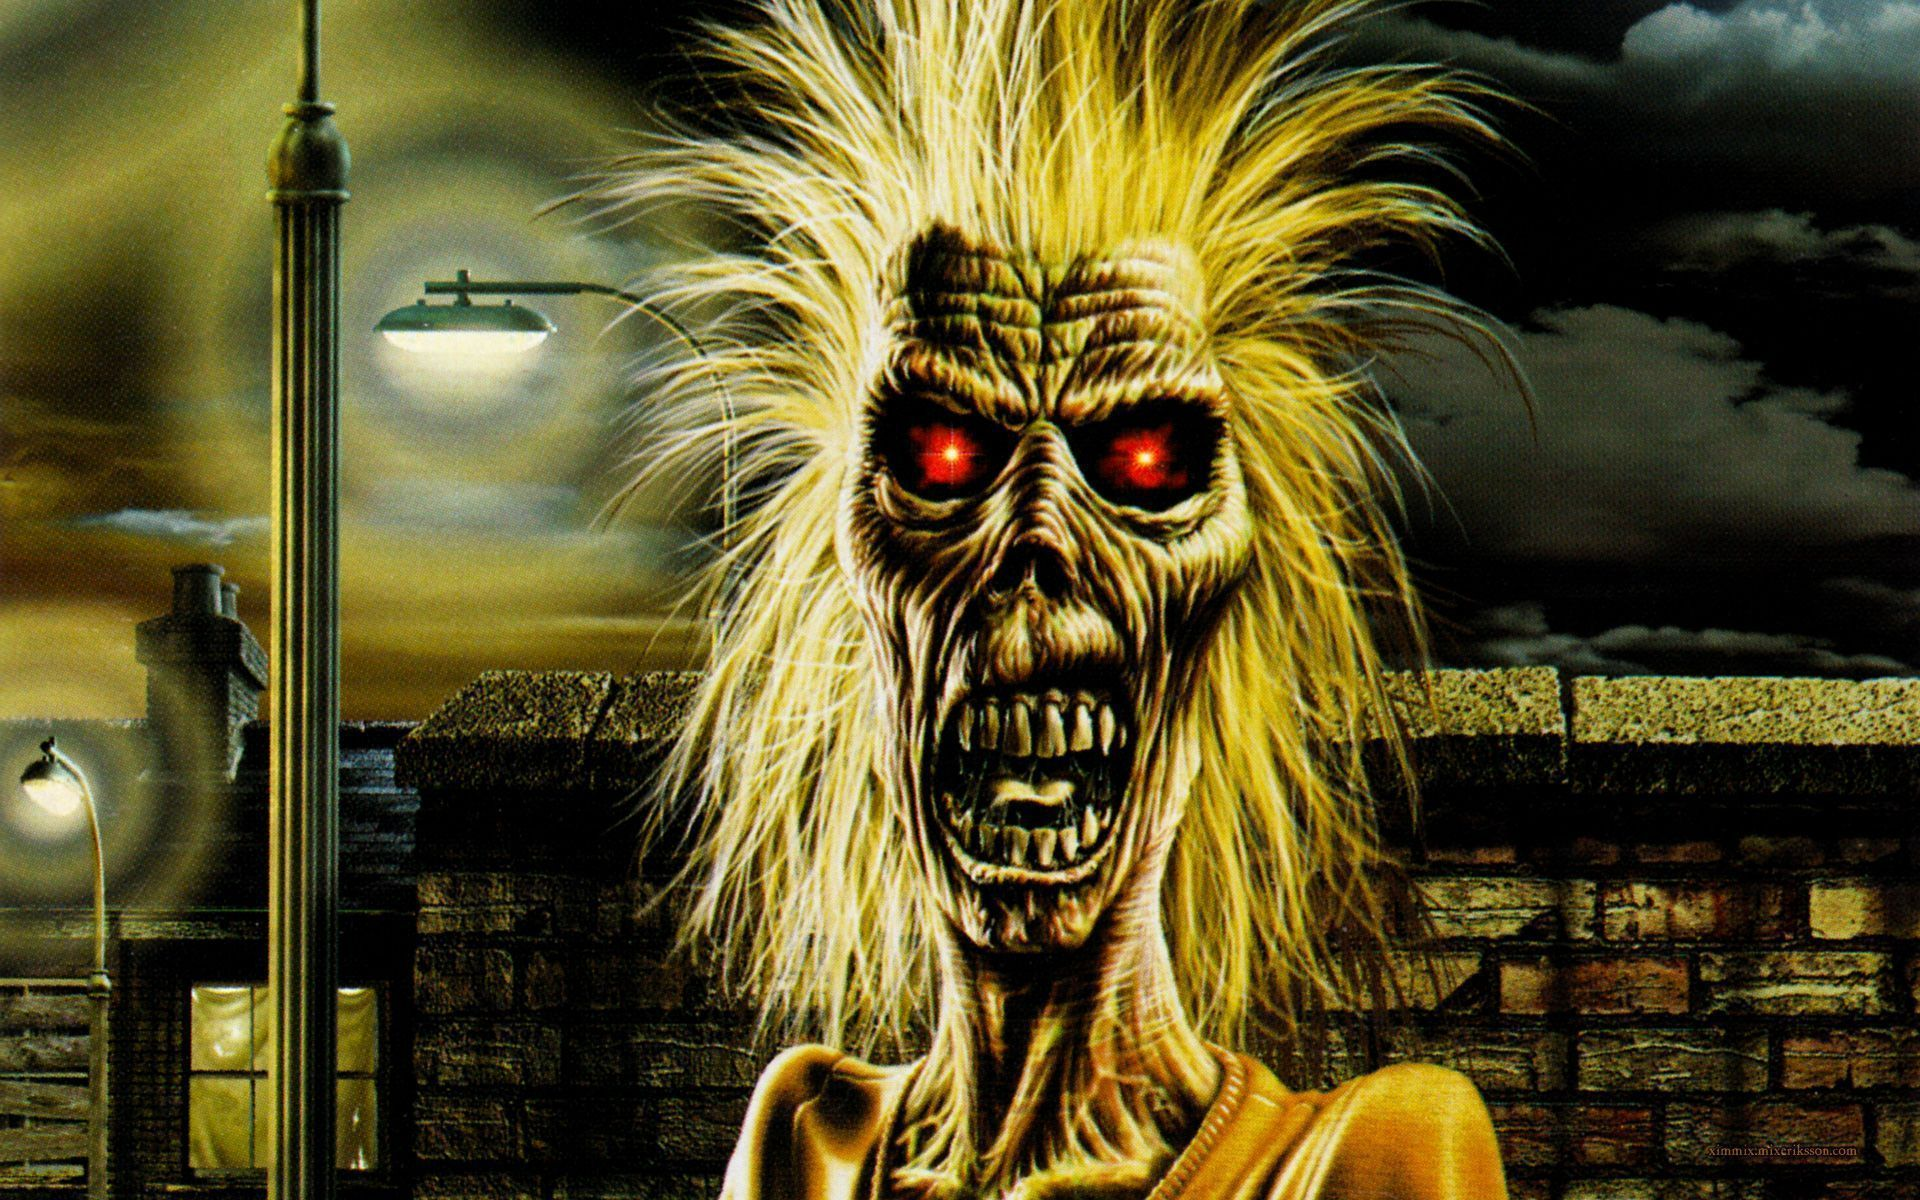 iron maiden heavy metal dark album cover eddie f wallpaper